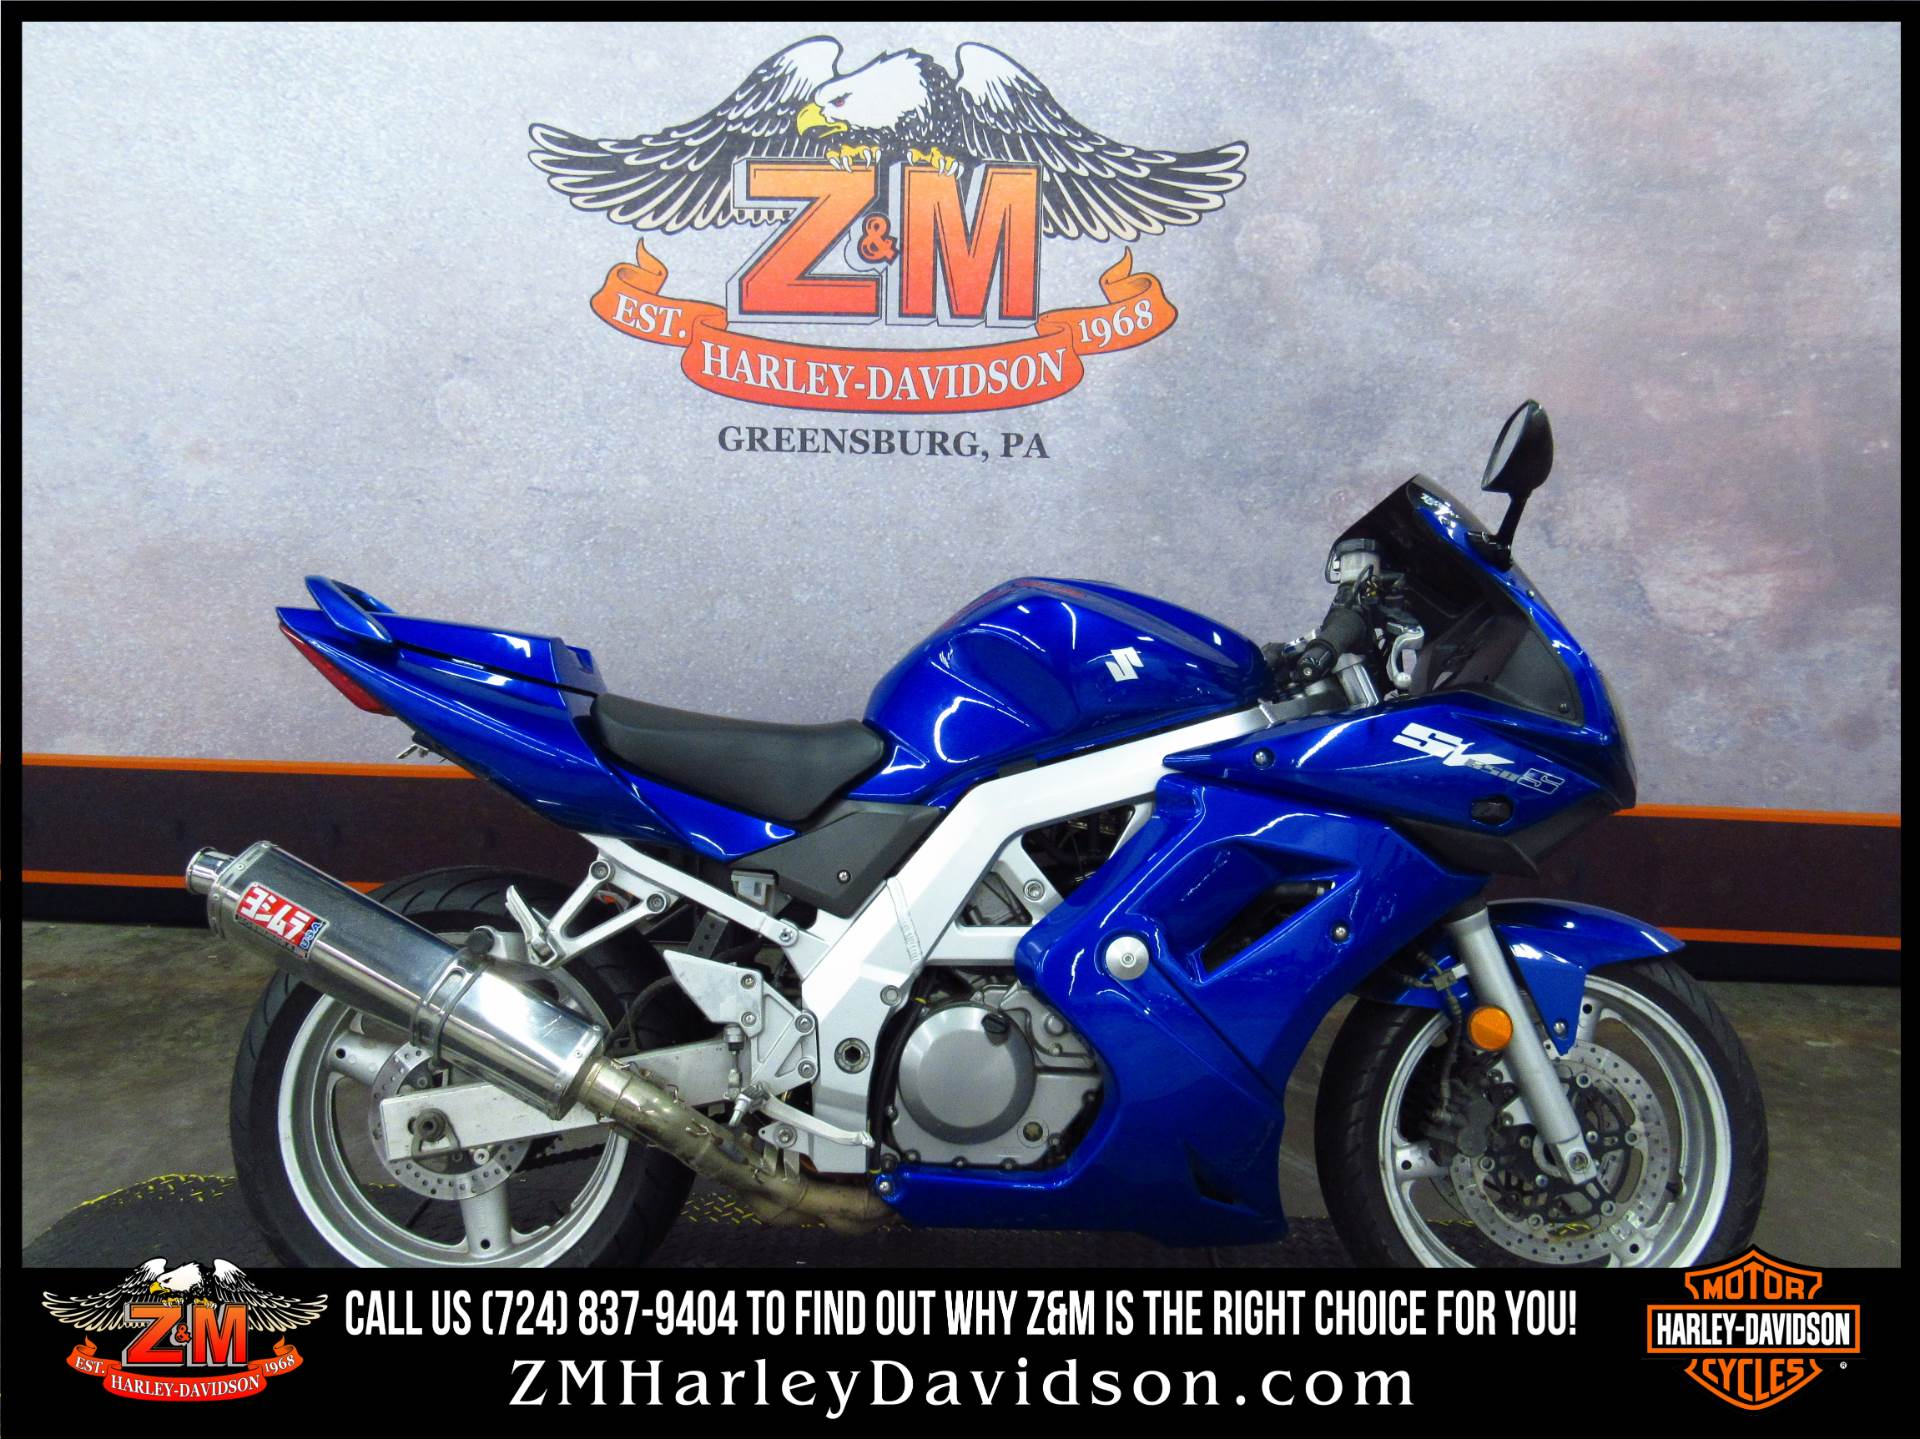 2004 Suzuki SV650S for sale 66685